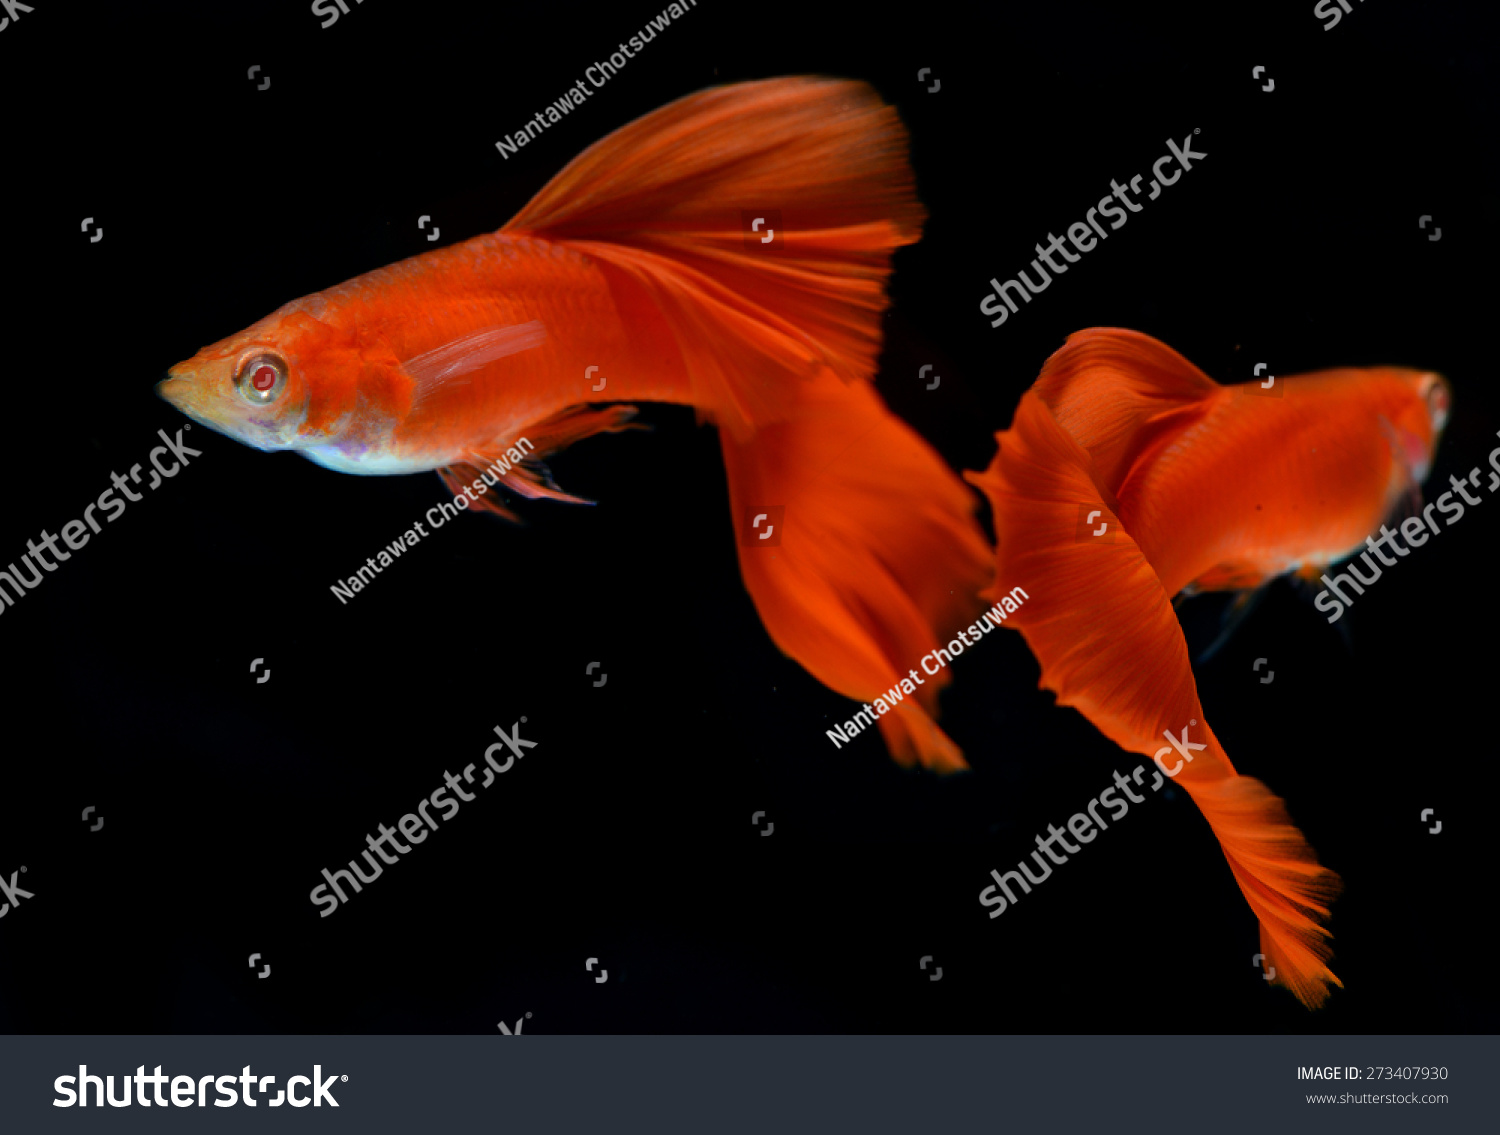 Royalty-free Motion of Albino Full Red Guppy… #273407930 Stock Photo ...